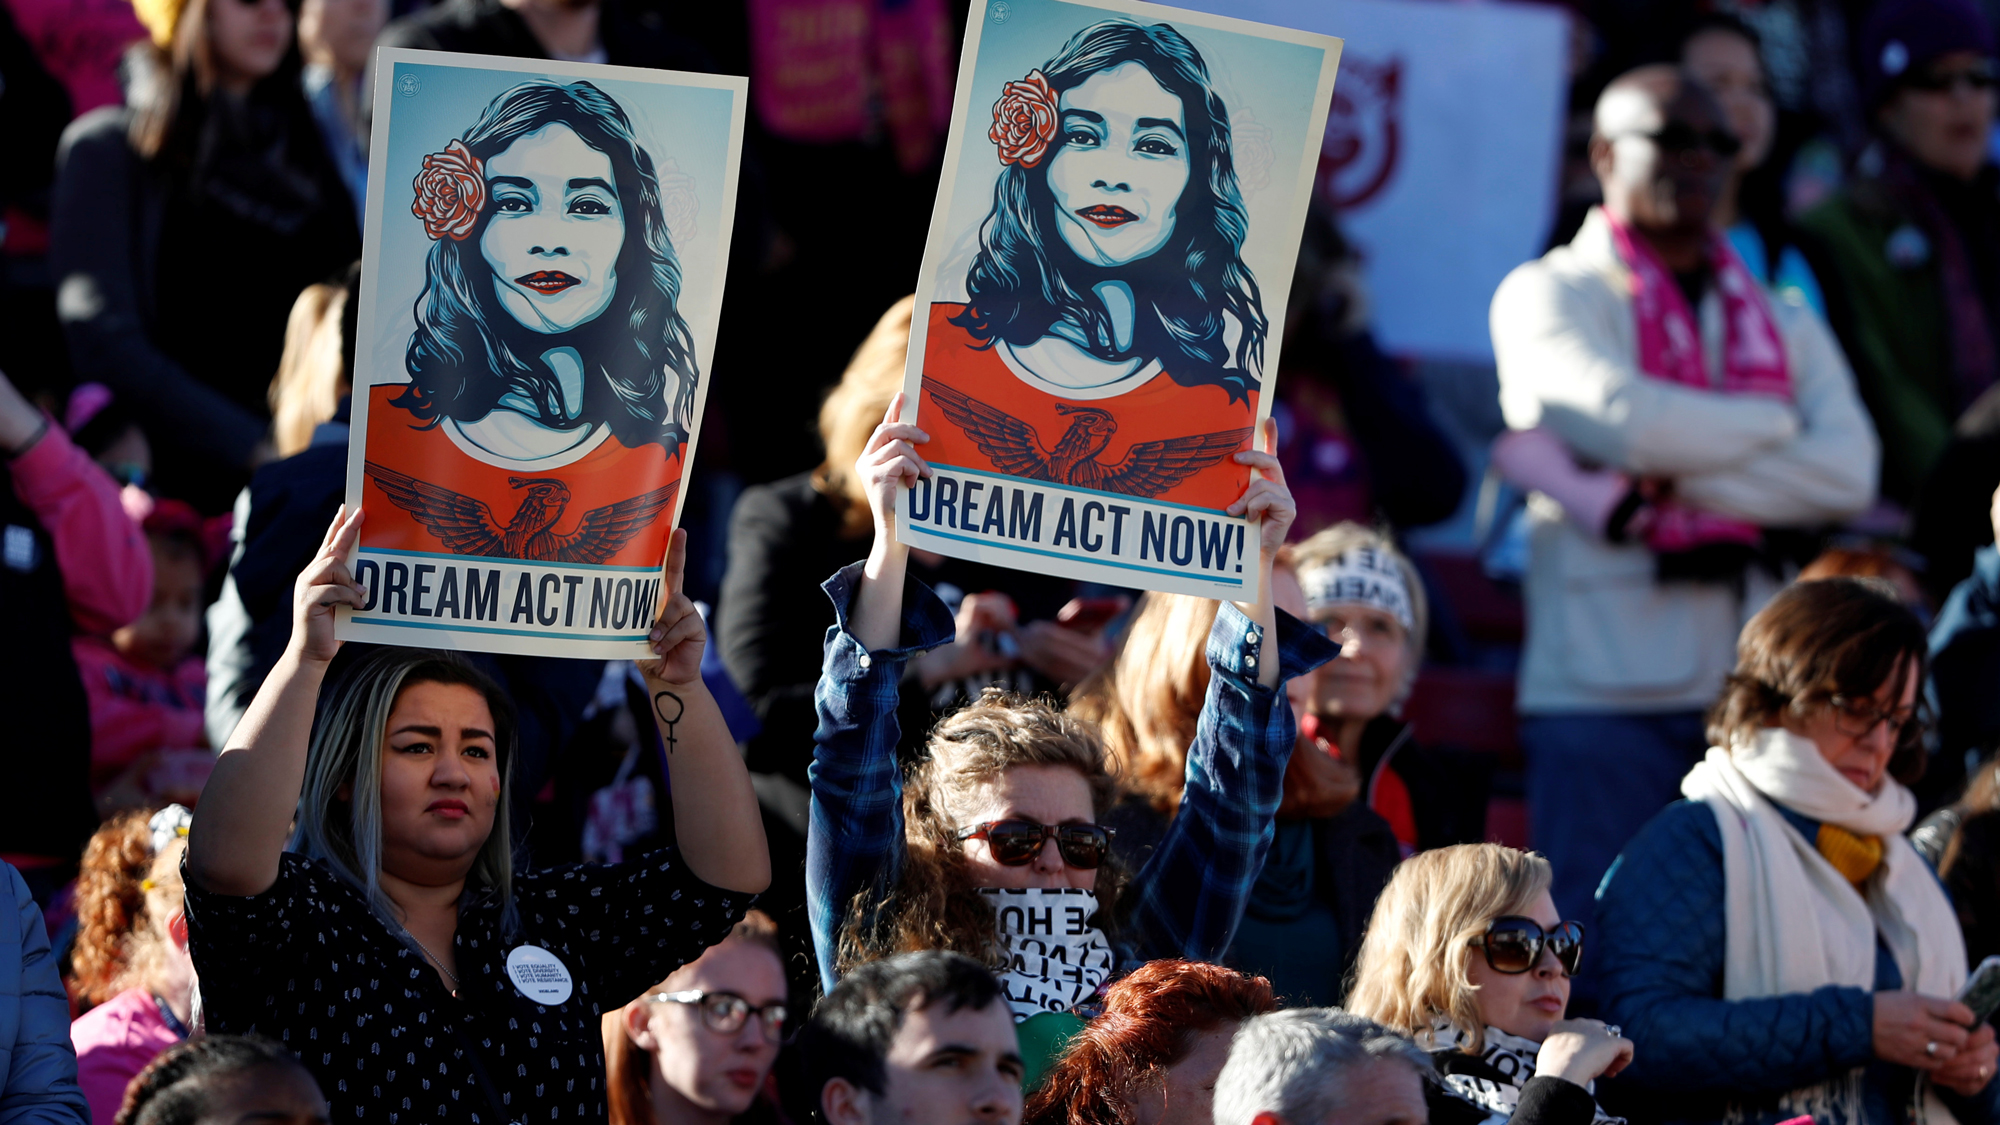 Supporters of Deferred Action for Childhood Arrivals (DACA) hold signs during the Women's March rally in Las Vegas, Jan. 21, 2018.